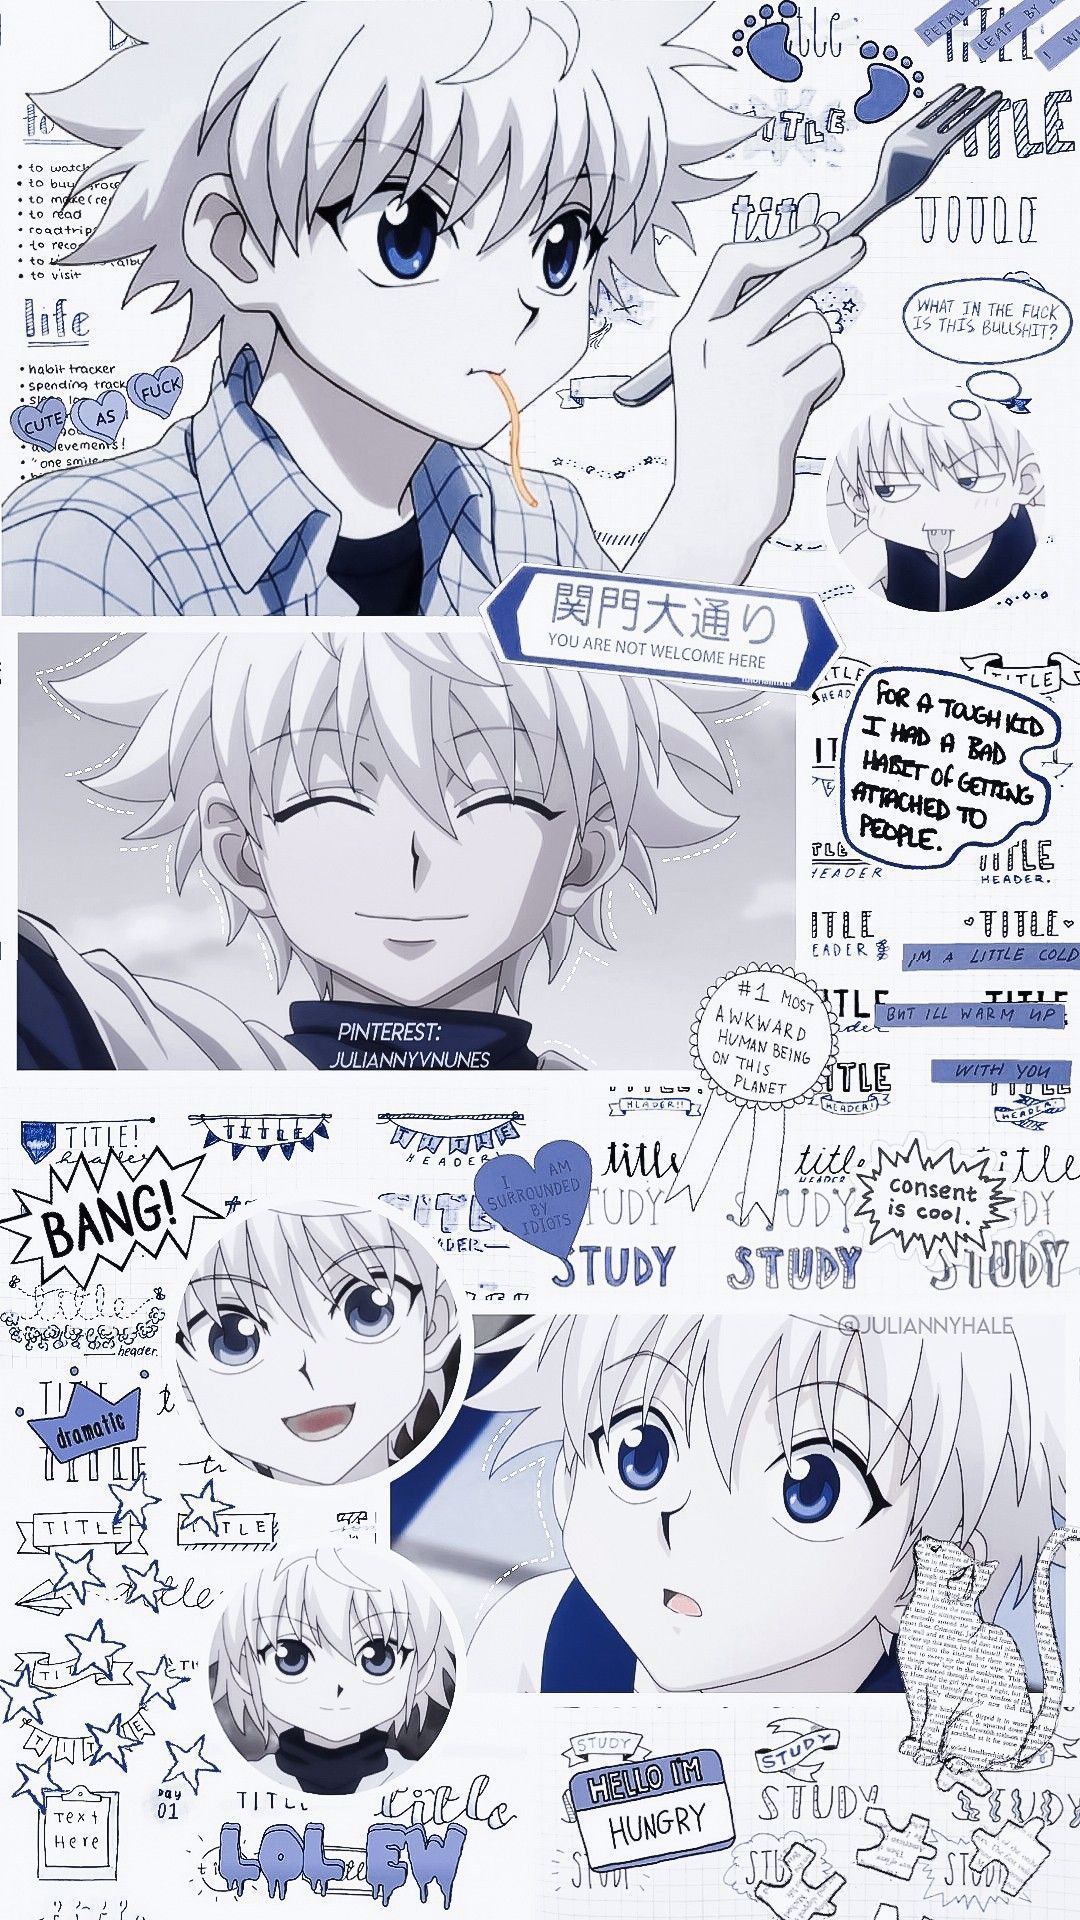 Hunter X Hunter Killua Zoldyck In 2020 Cute Anime Wallpaper Anime Wallpaper Anime Drawings Boy